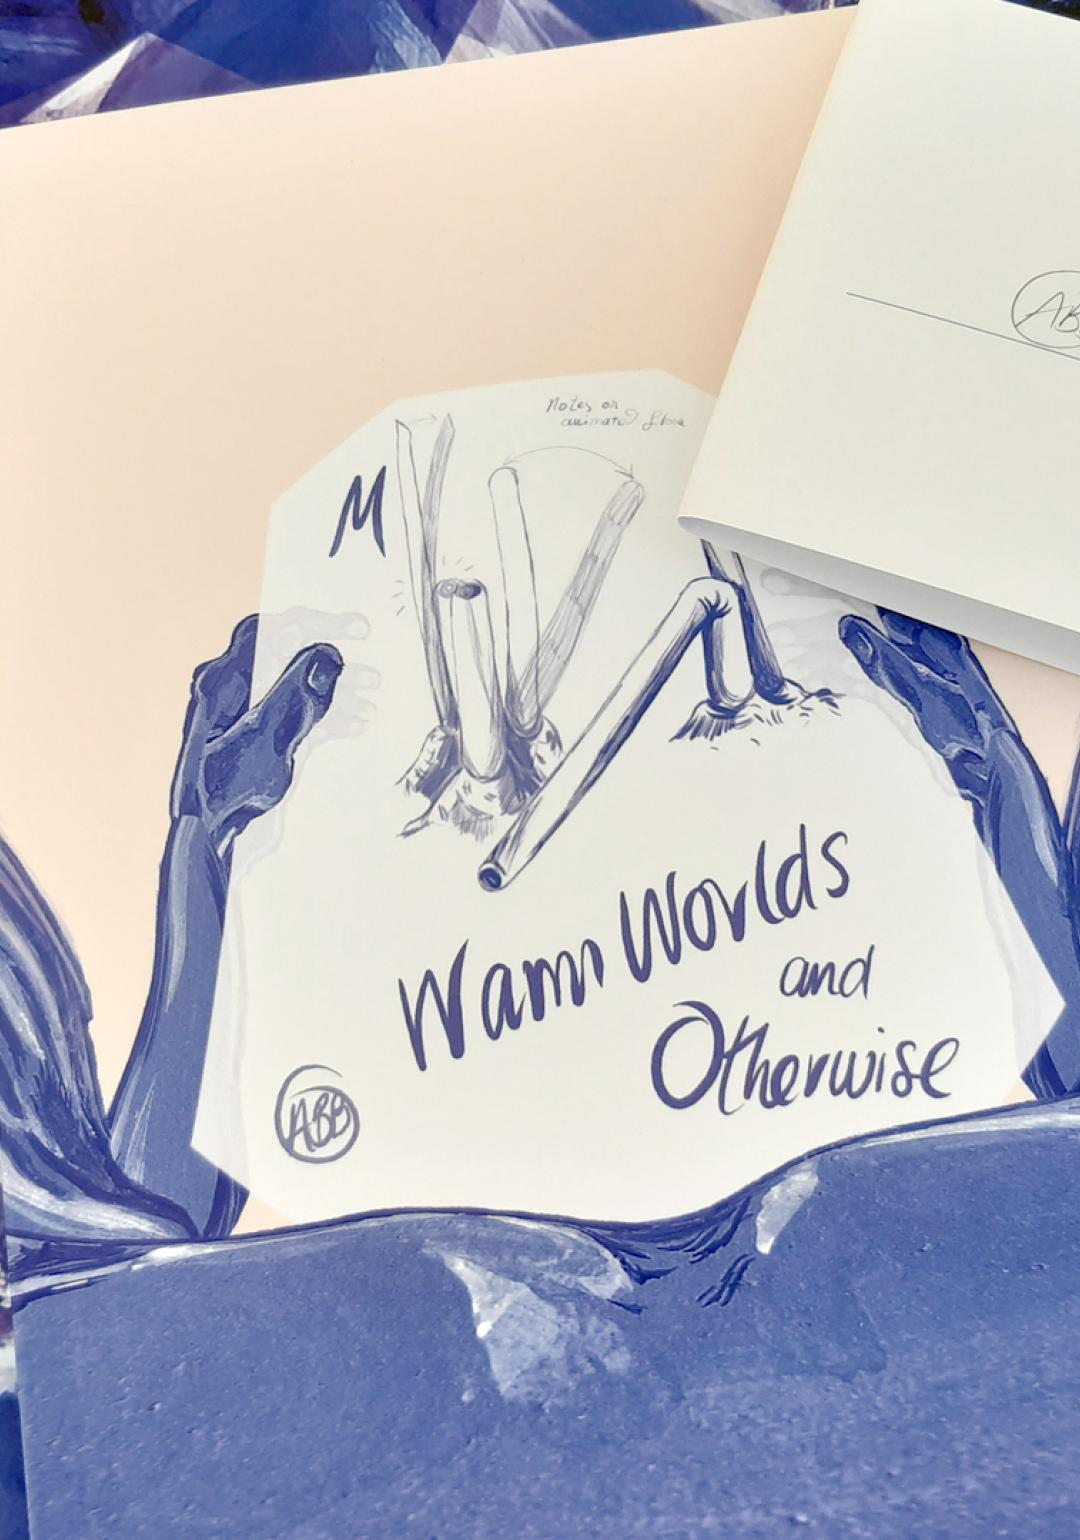 Warm Worlds and Otherwise: Publication Launch